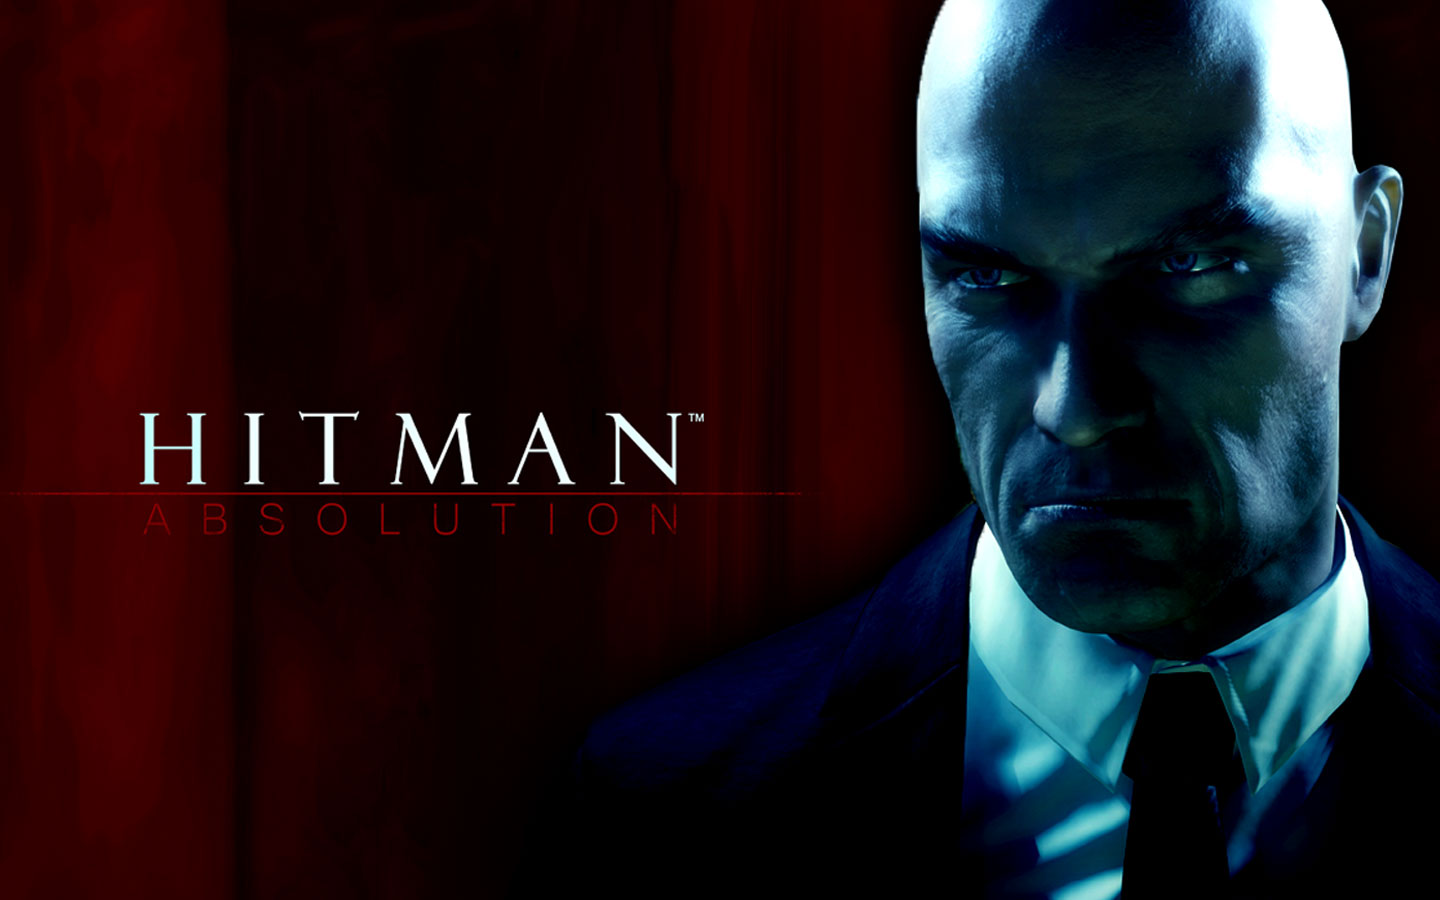 http://2.bp.blogspot.com/-Pn-4egYUwLQ/Tj9ObBEgHVI/AAAAAAAABuM/Ry3vpZ0zbtY/s1600/hitman_absolution_wallpaper.jpg